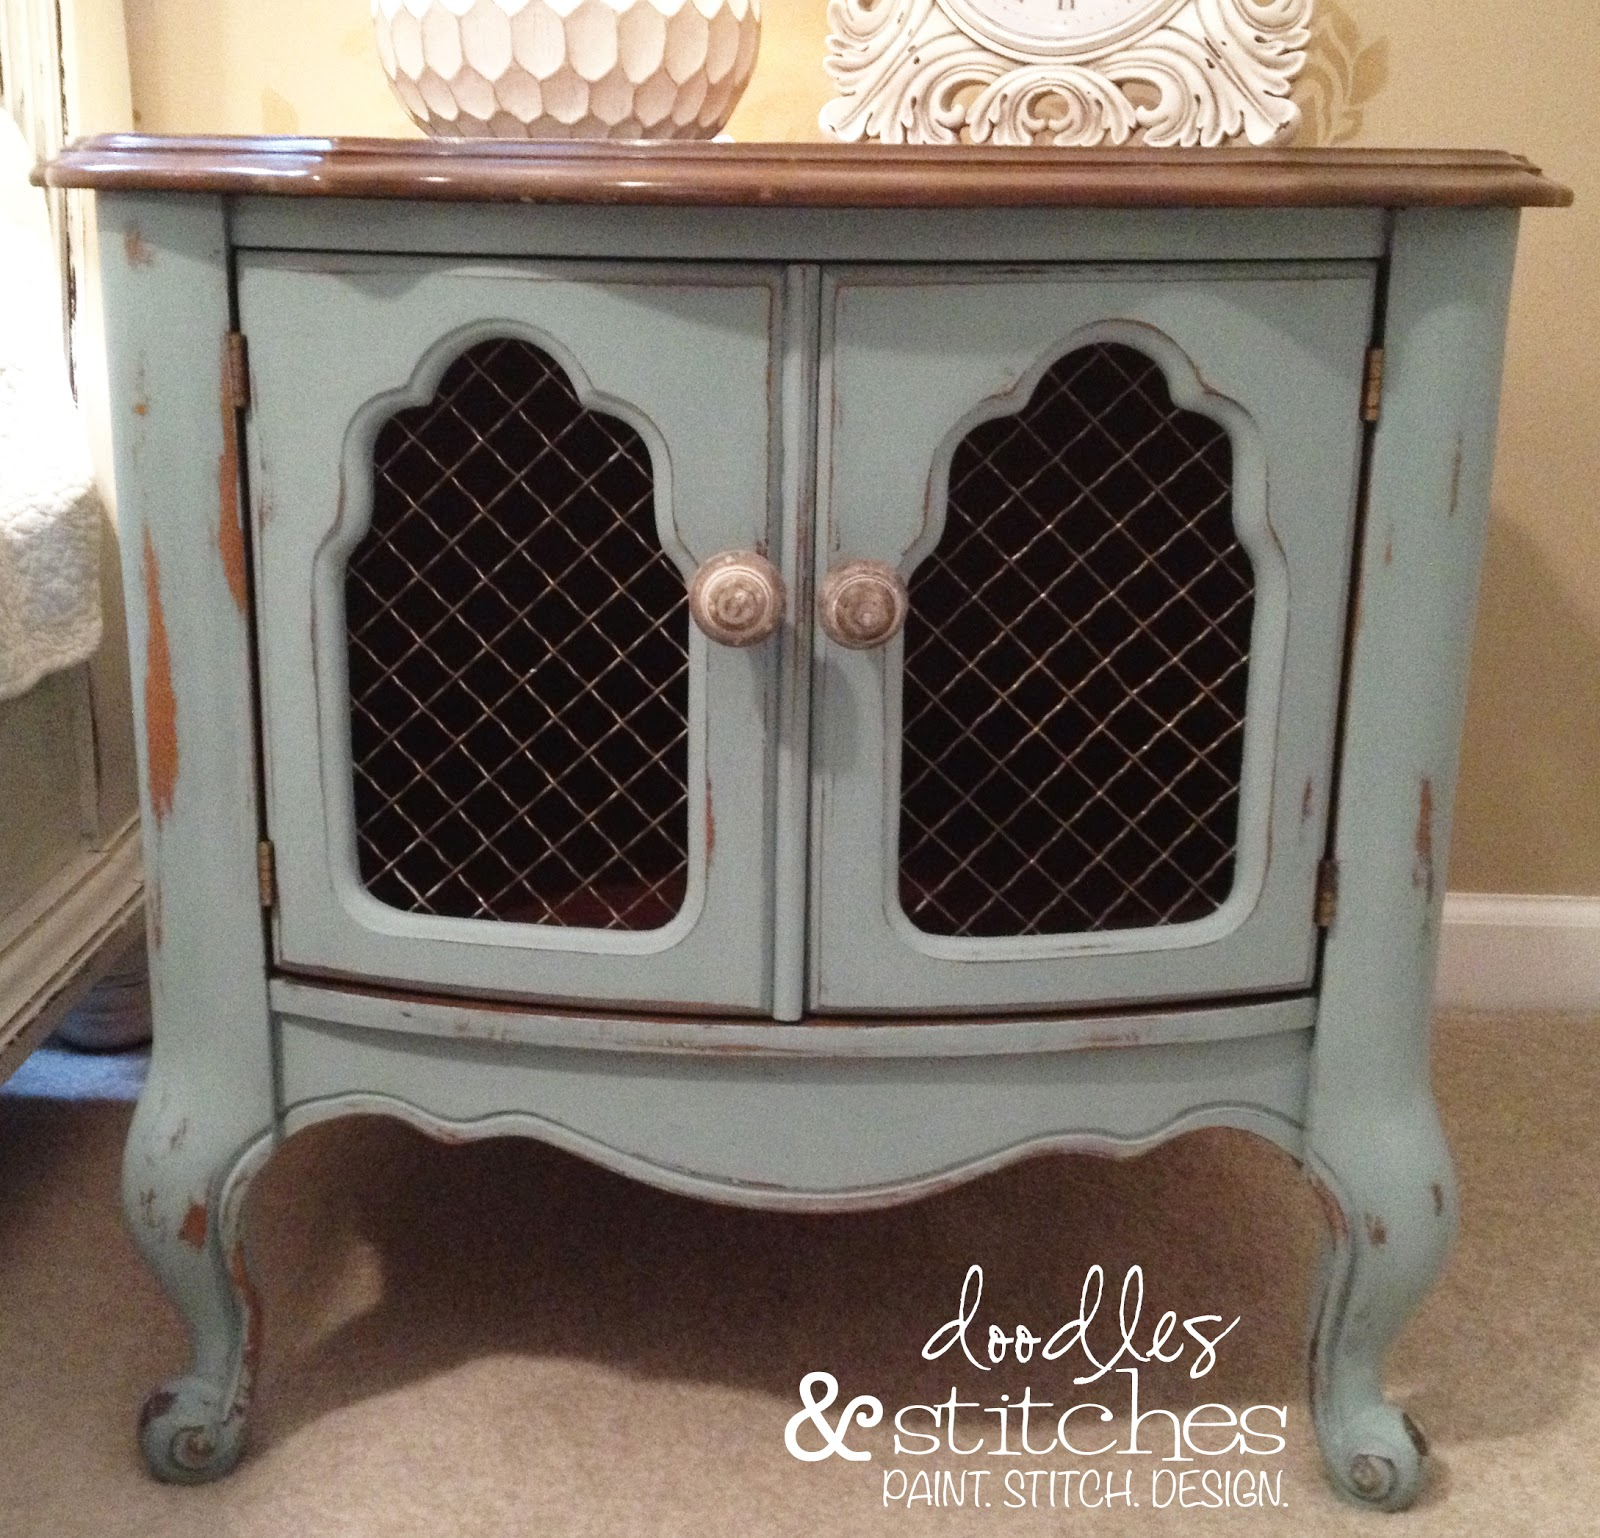 Chicken Wire Nightstand - Doodles & Stitches